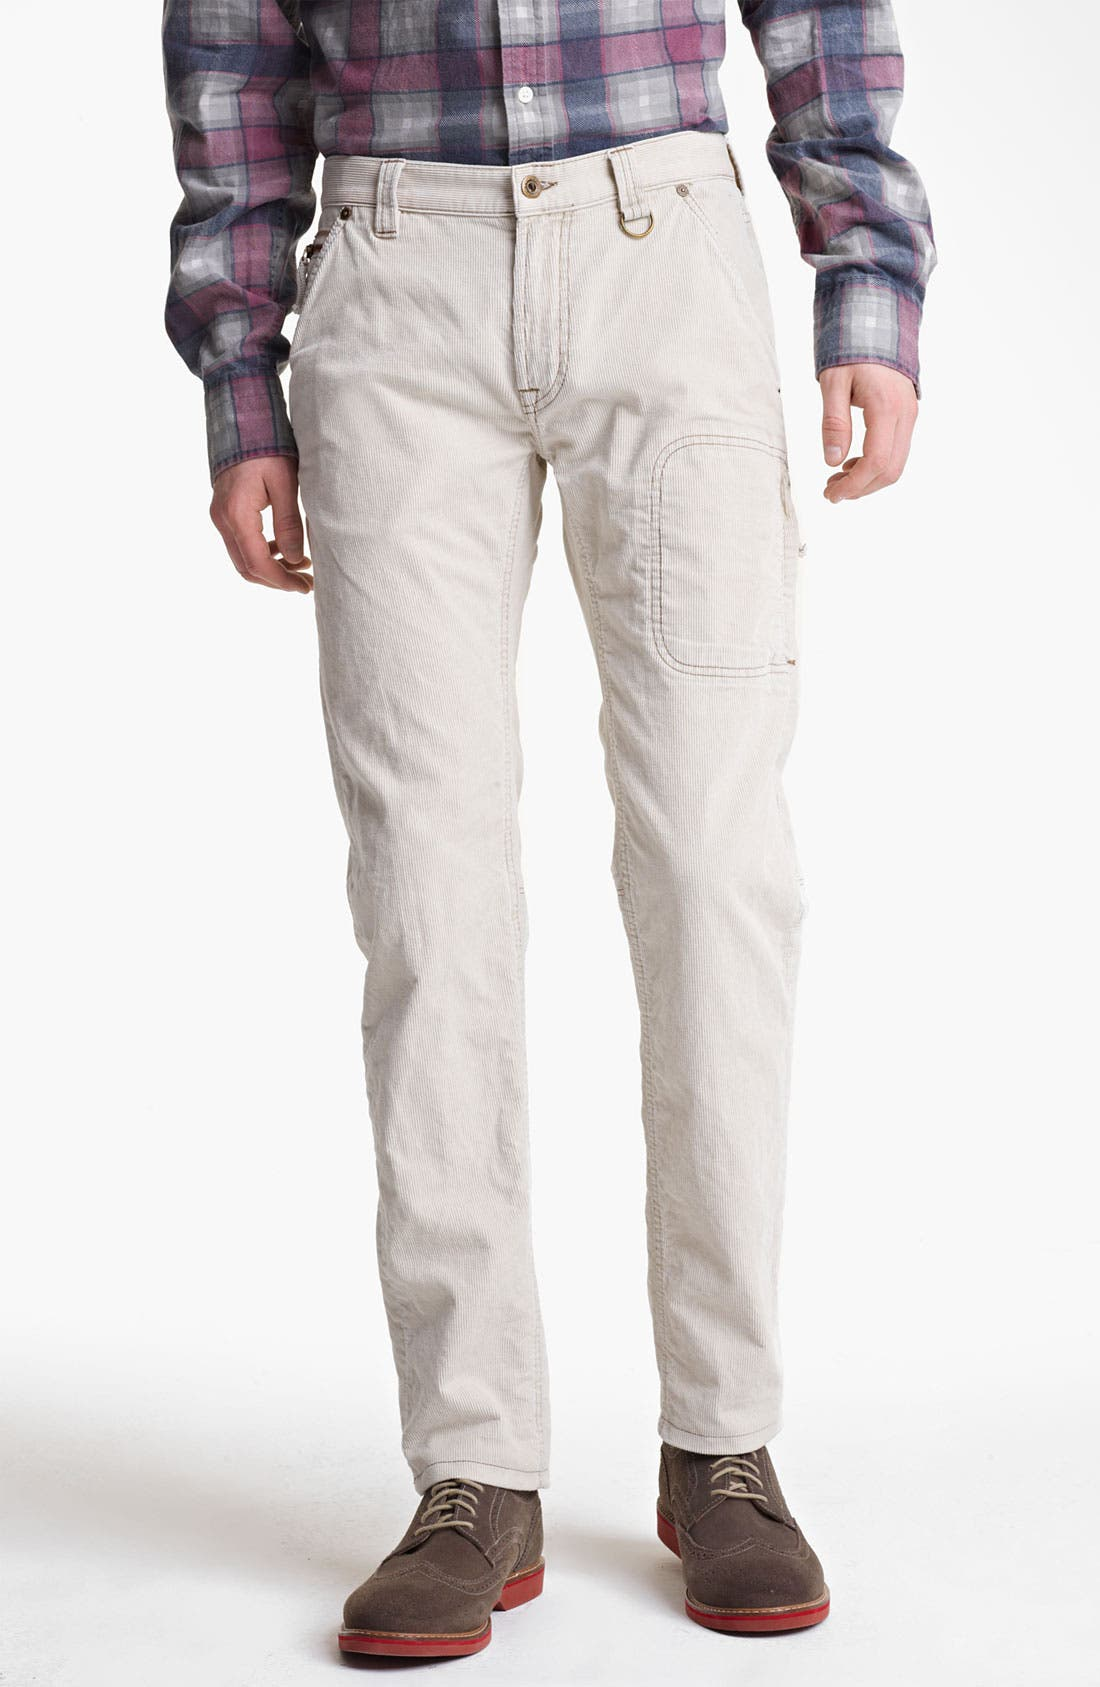 Alternate Image 1 Selected - Gant by Michael Bastian 'Explorer' Slim Leg Corduroy Pants